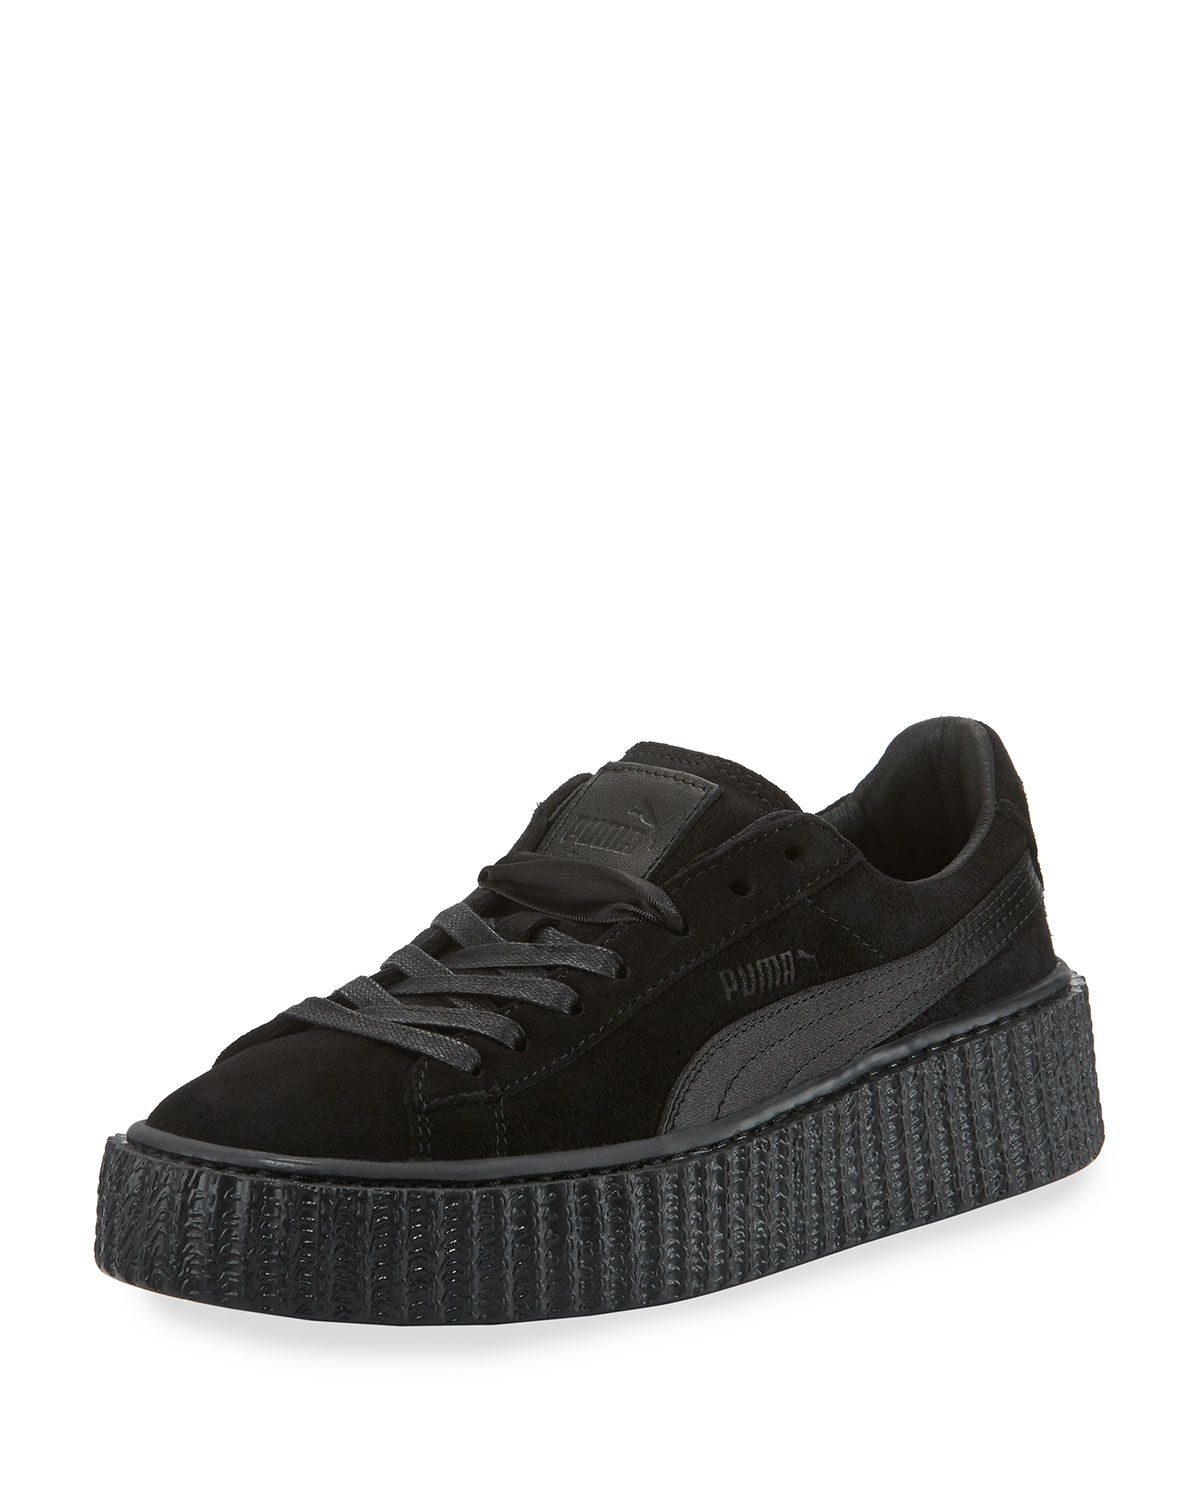 the best attitude b0e23 97046 Satin-Trim Suede Creeper Black | *Vehicle Maintenance, Care ...